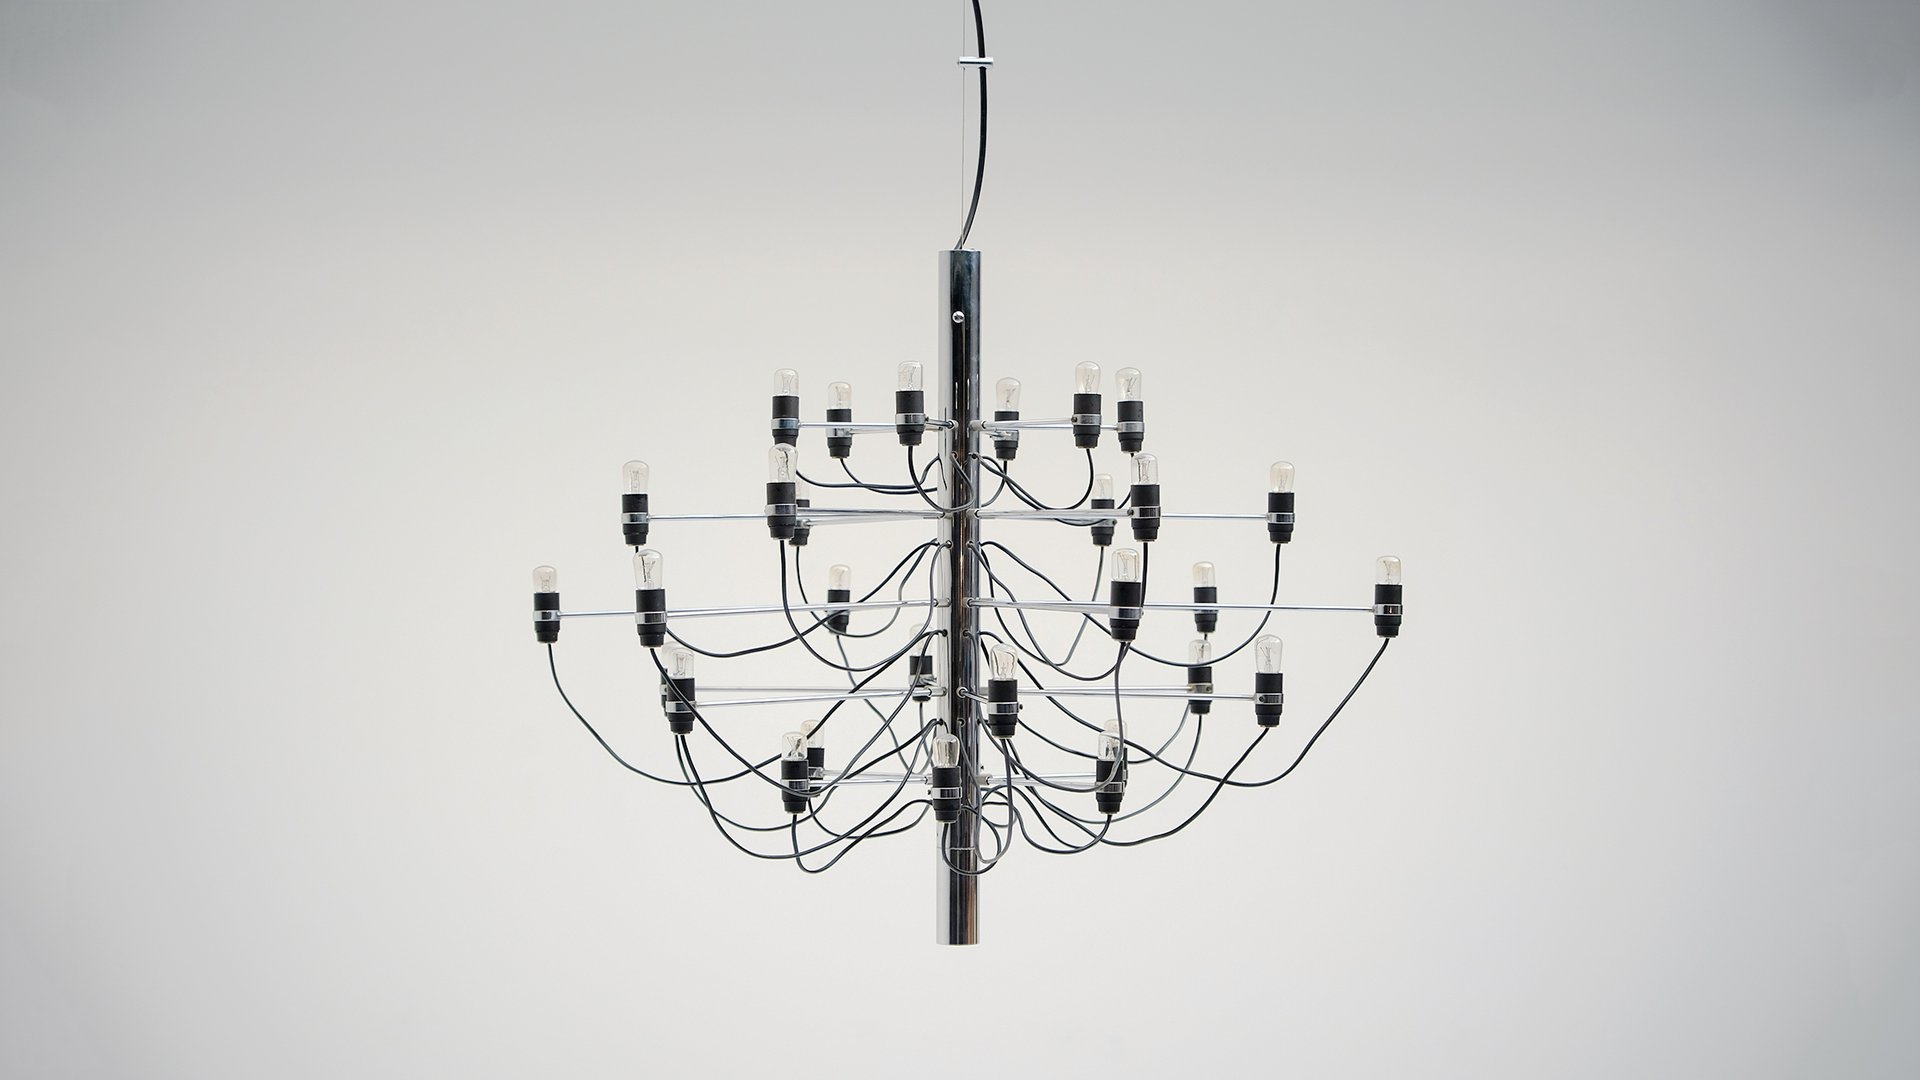 Vintage chandelier by gino sarfatti for arteluce for sale at pamono vintage chandelier by gino sarfatti for arteluce aloadofball Choice Image